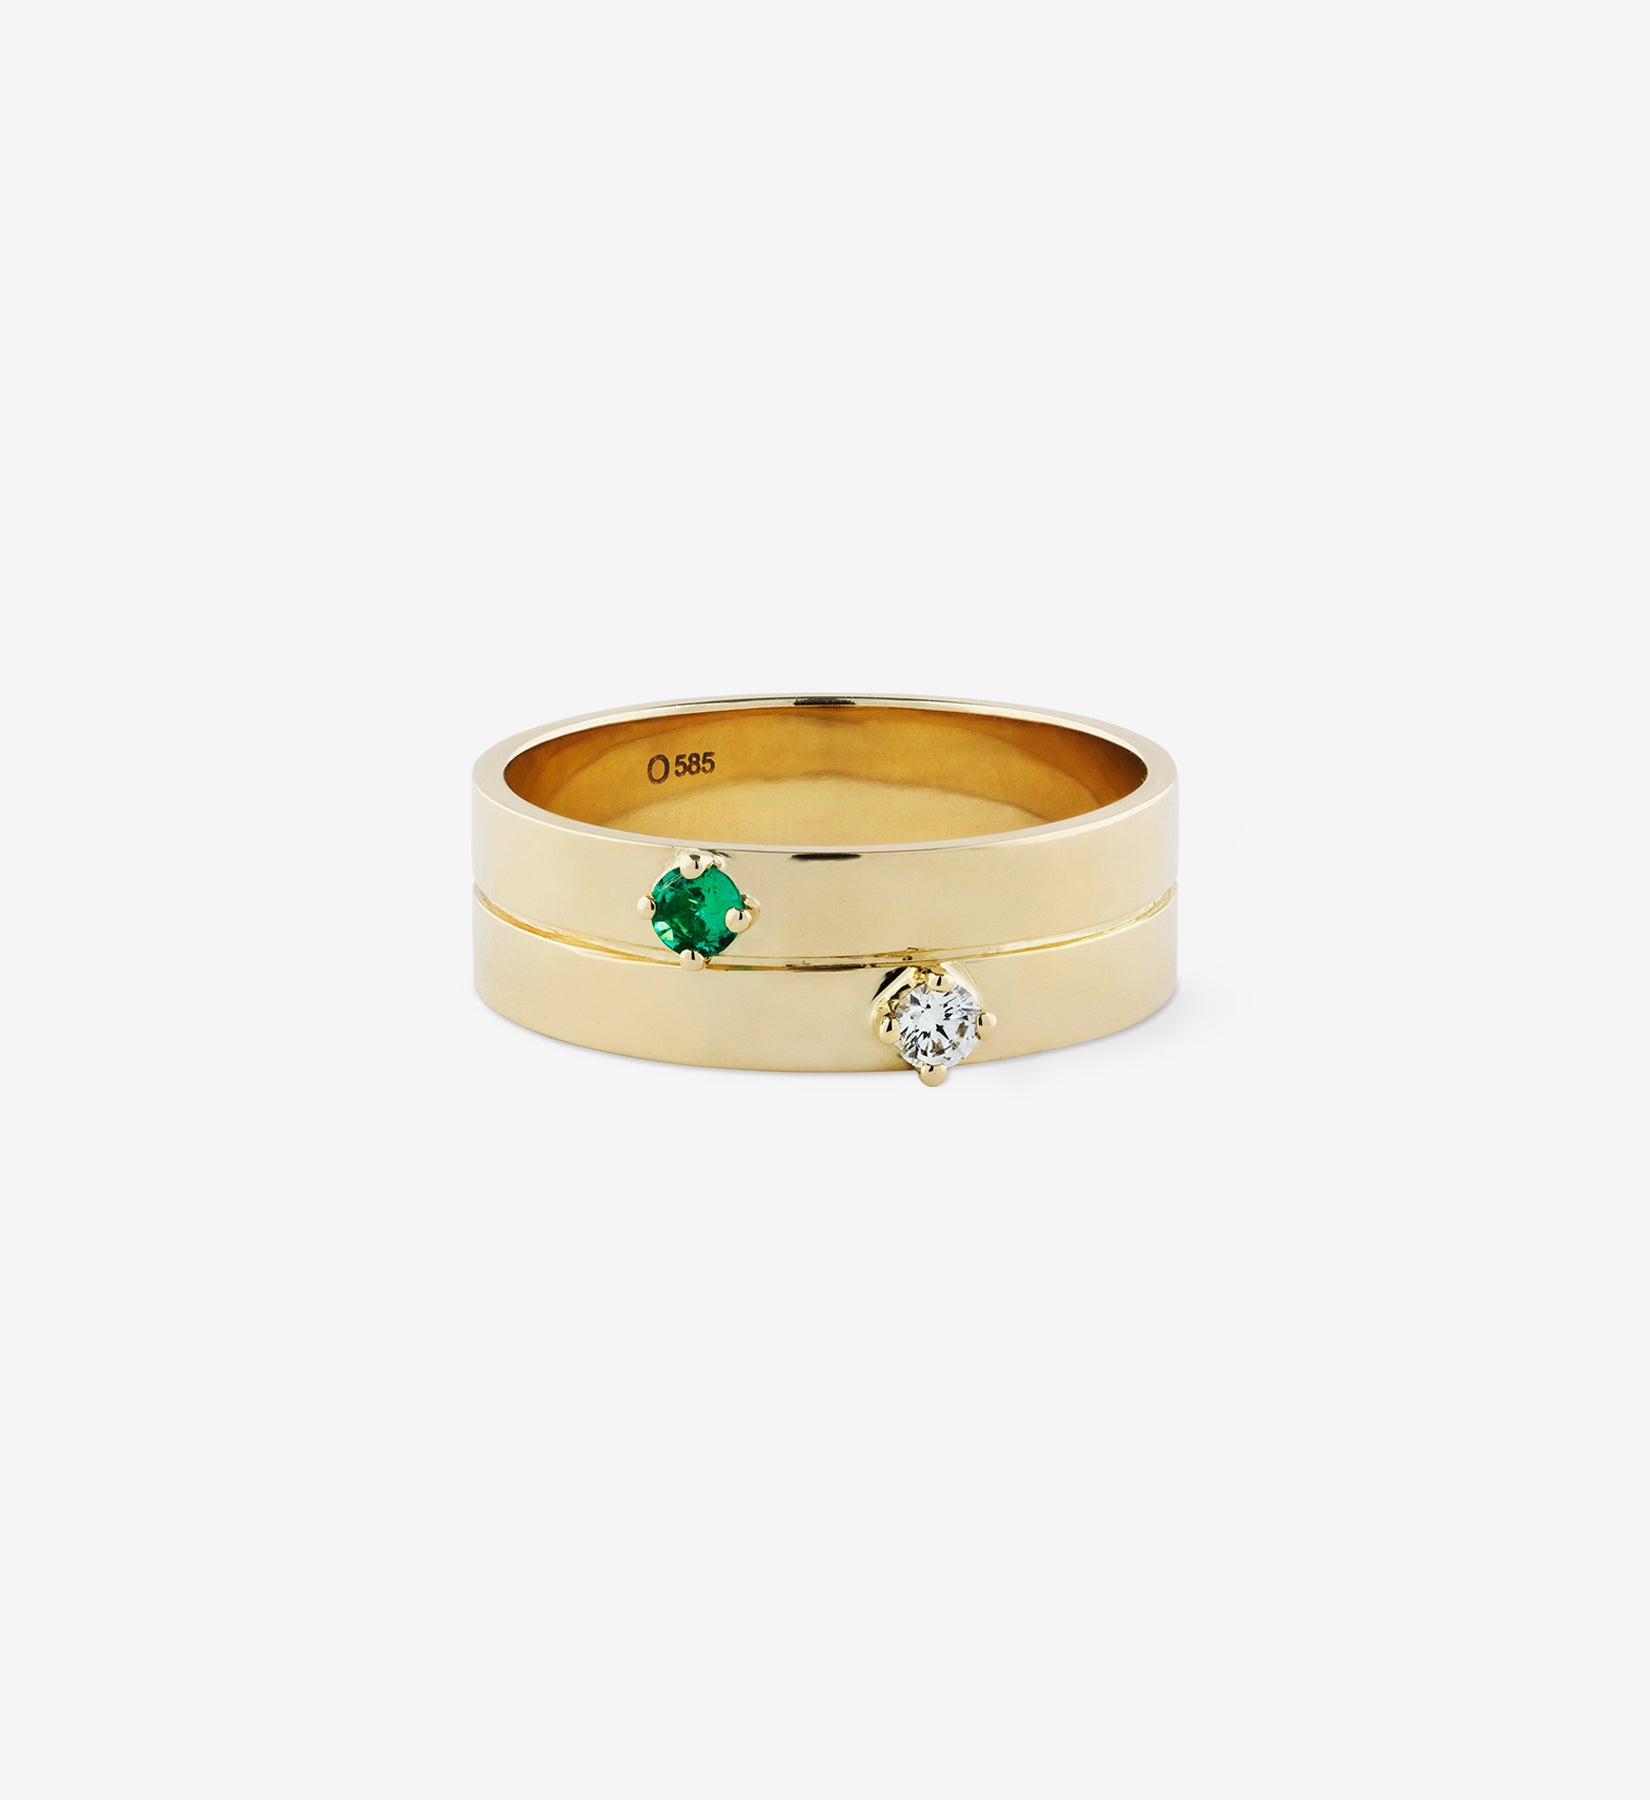 OUVERTURE, Fine jewelry, 14K gold, diamonds, golden ring, diamond ring, golden earring, diamond earring. Handcrafted jewelry. Designed in Berlin. Honestly priced. Demifine. Earparty. Stacking rings. Diamond Eternity Ring, Eternity ring. Engagement ring. Wedding band. Wedding ring. Emerald Diamond Ring 0.12